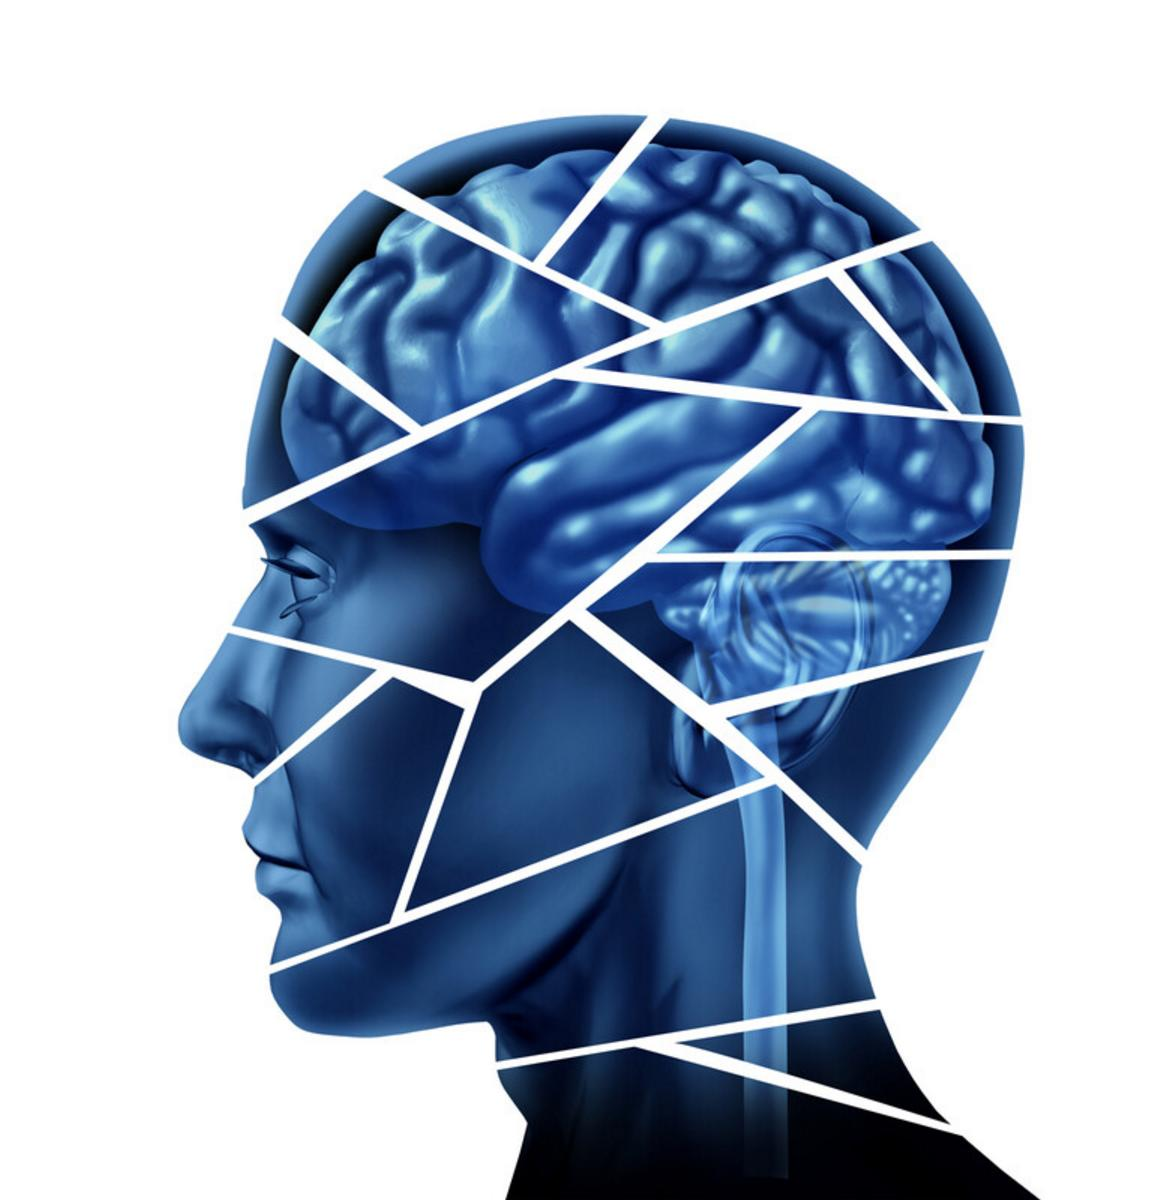 Blue head image with brain outline, cut into pieces representing brain injury